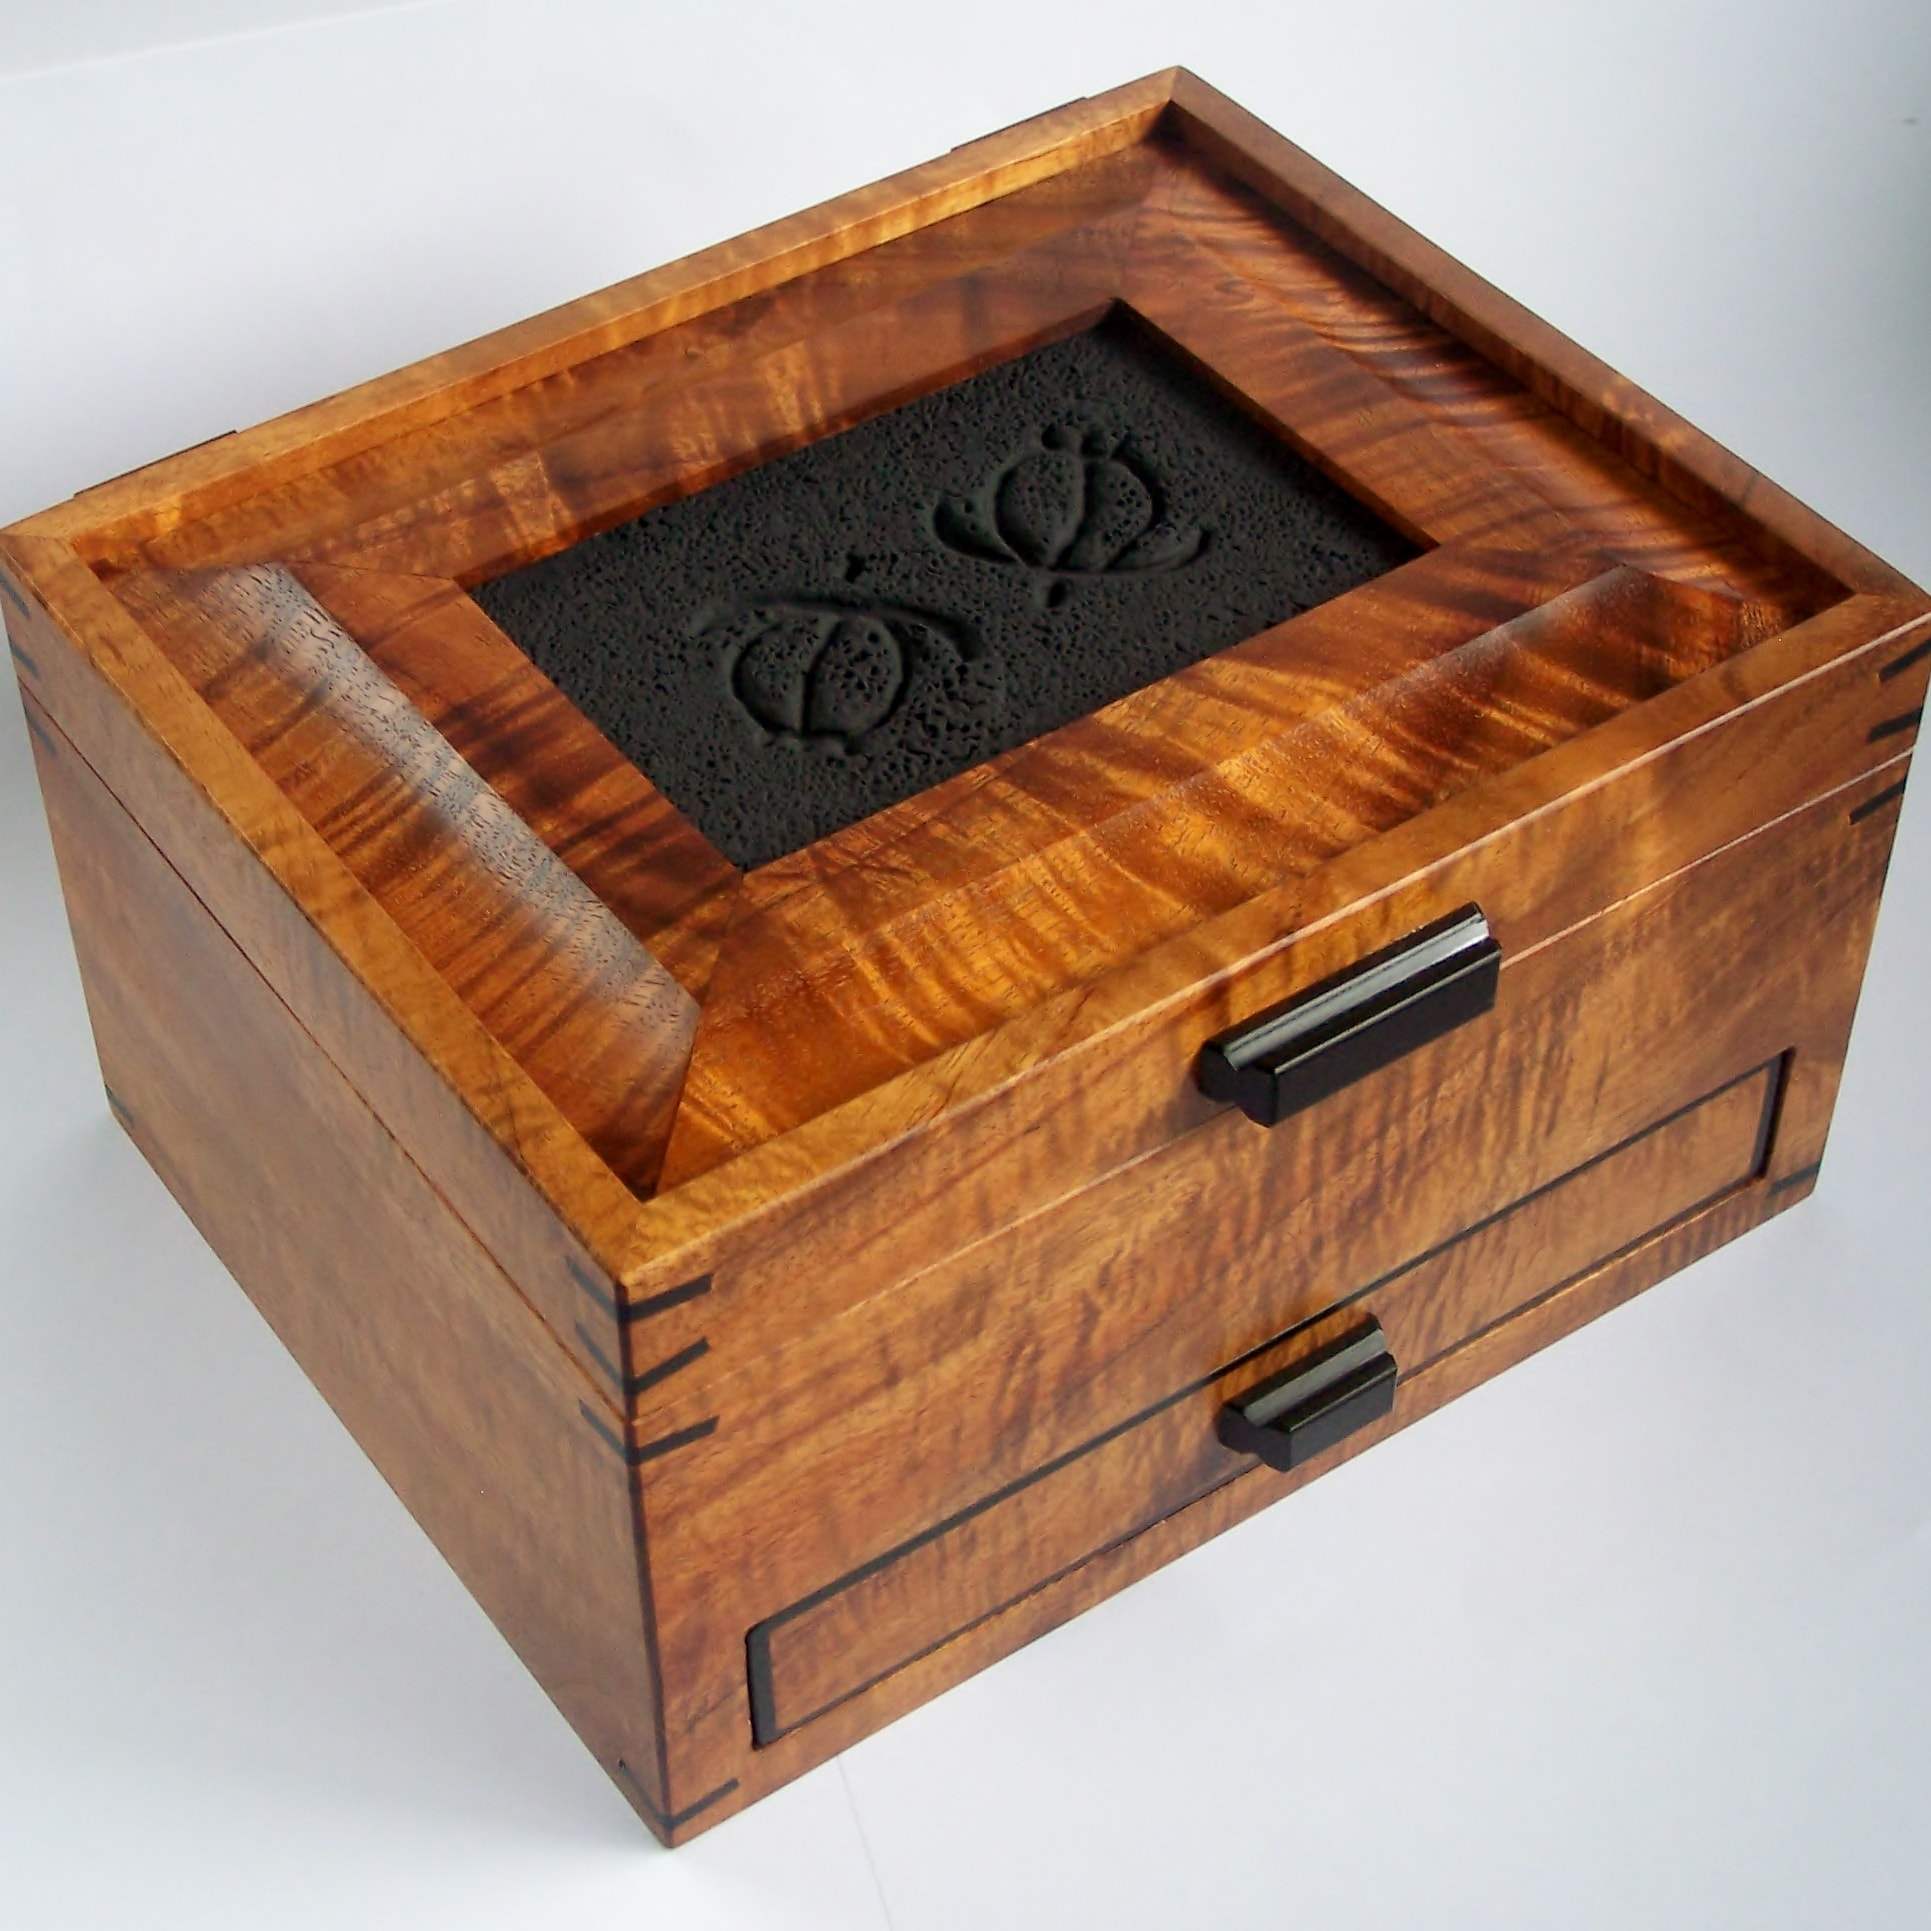 Koa Drawer Box with Honu tile